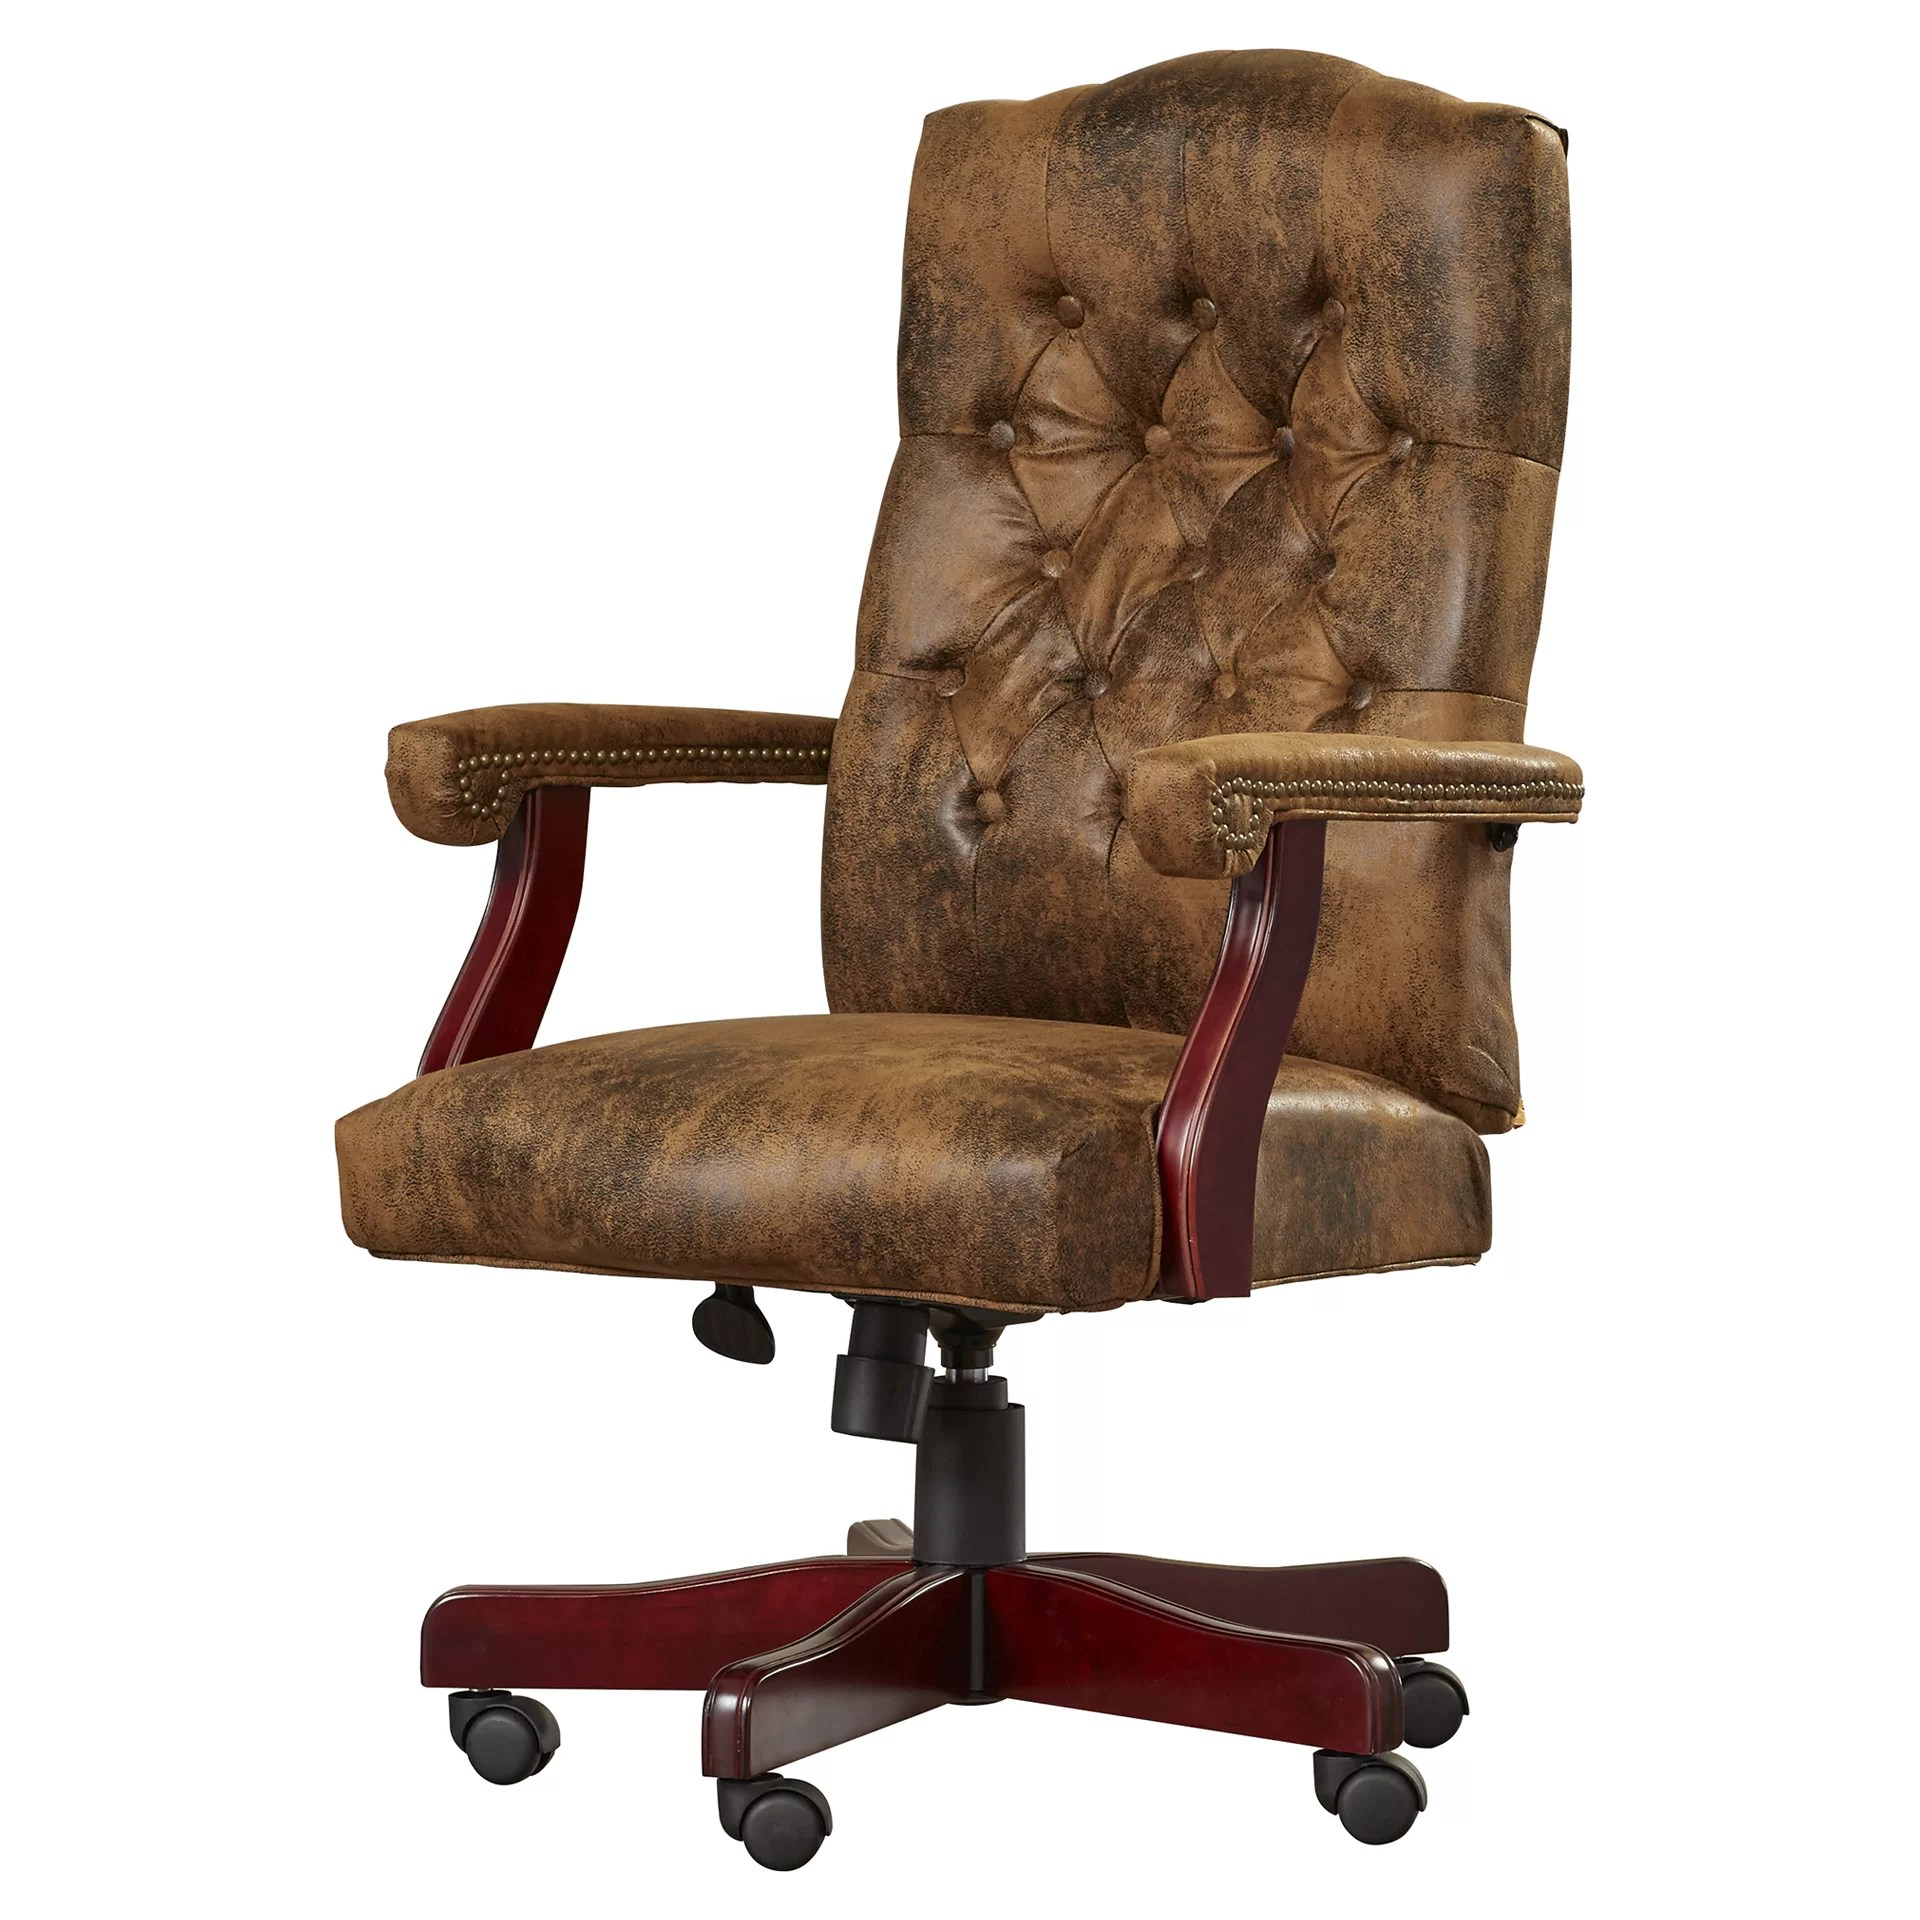 Office Chair With Arms Loon Peak Hebbville High Back Executive Office Chair With